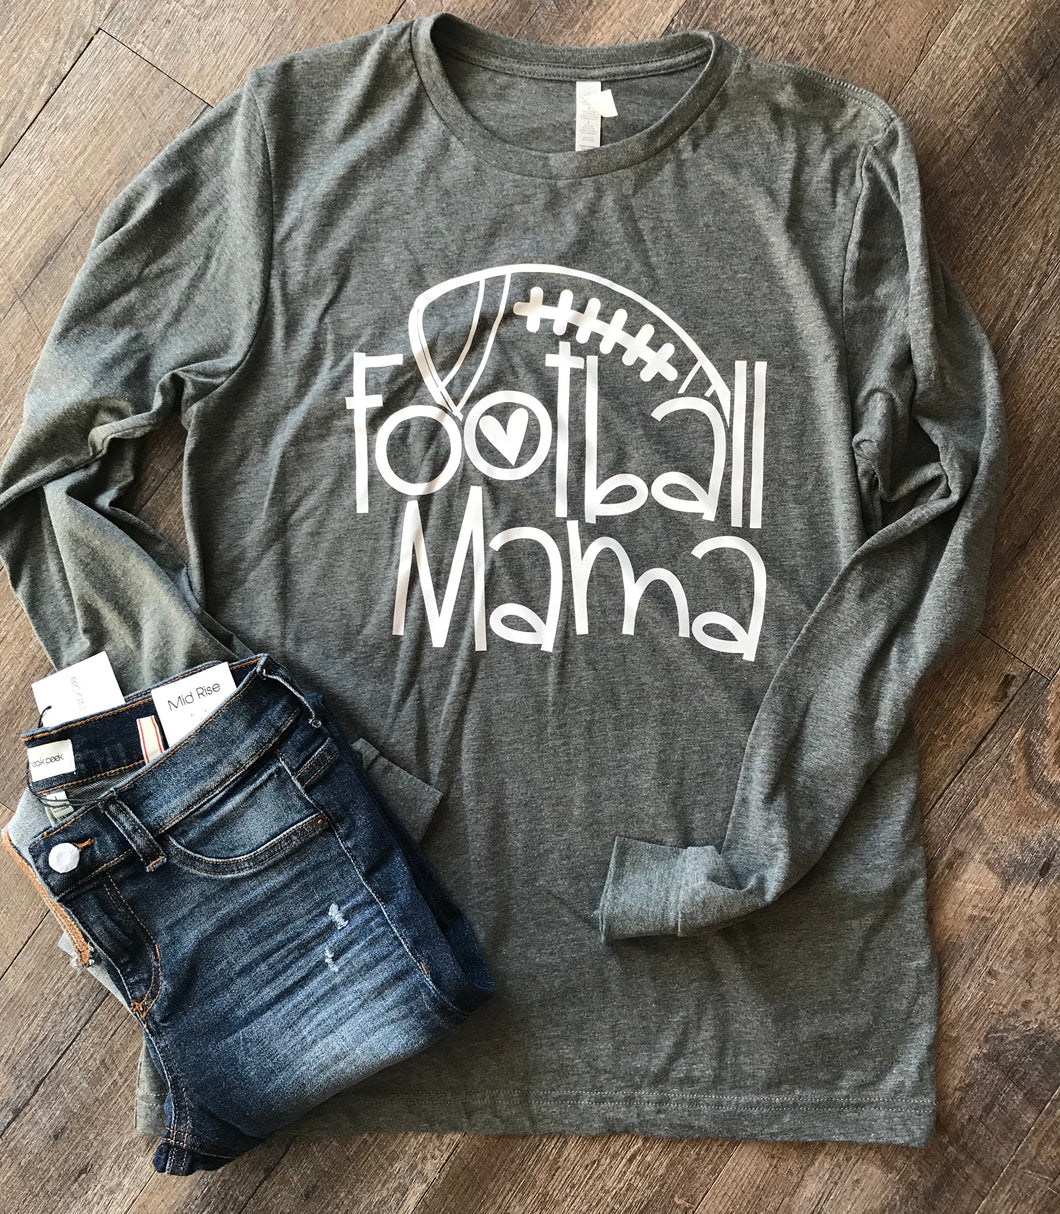 Football mama graphic tee dark heathered gray long sleeve or short sleeve - Mavictoria Designs Hot Press Express